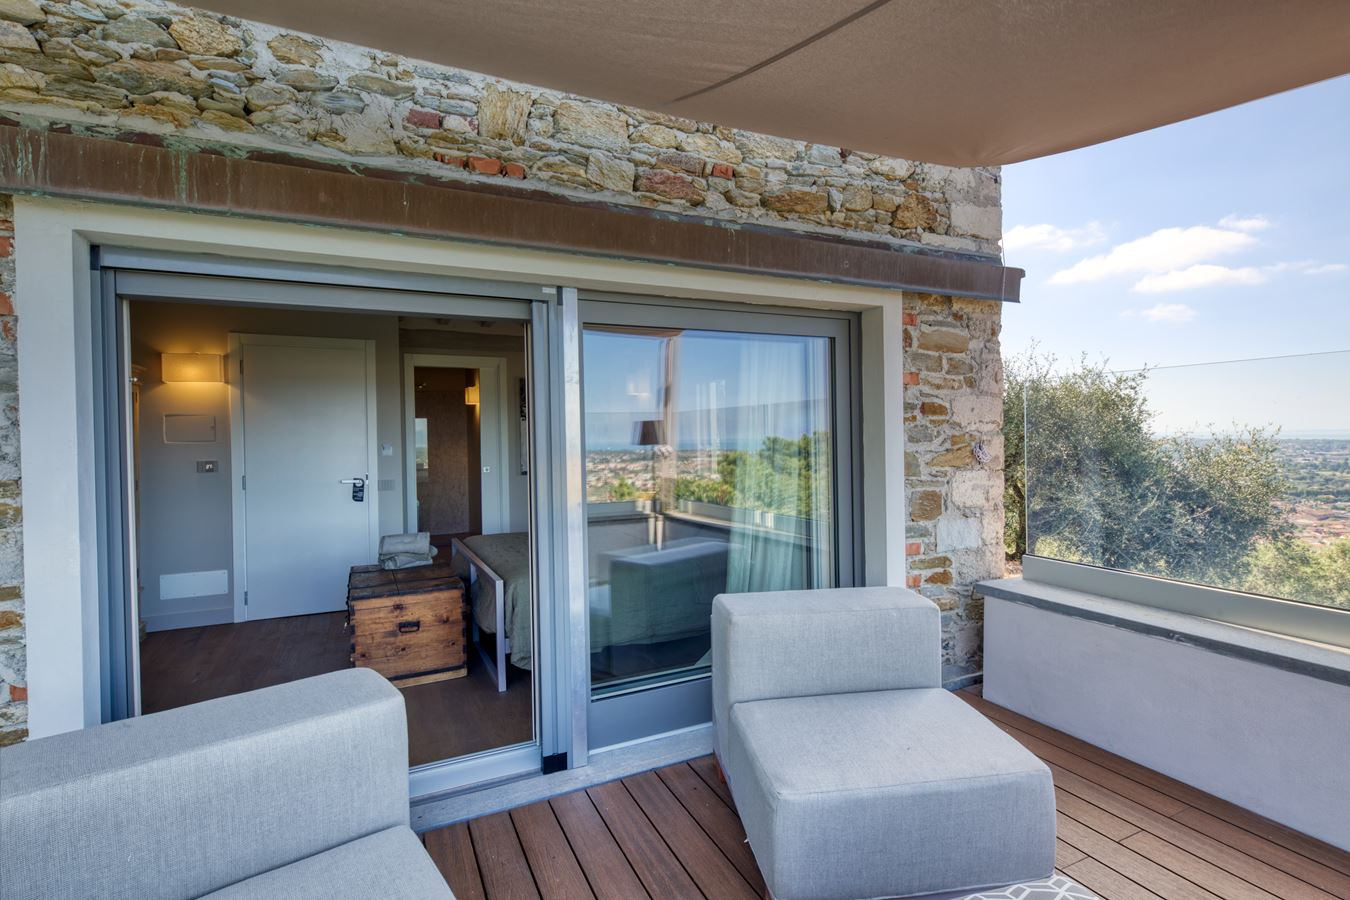 LUXURY SUITE IN PIETRASANTA LUCCA